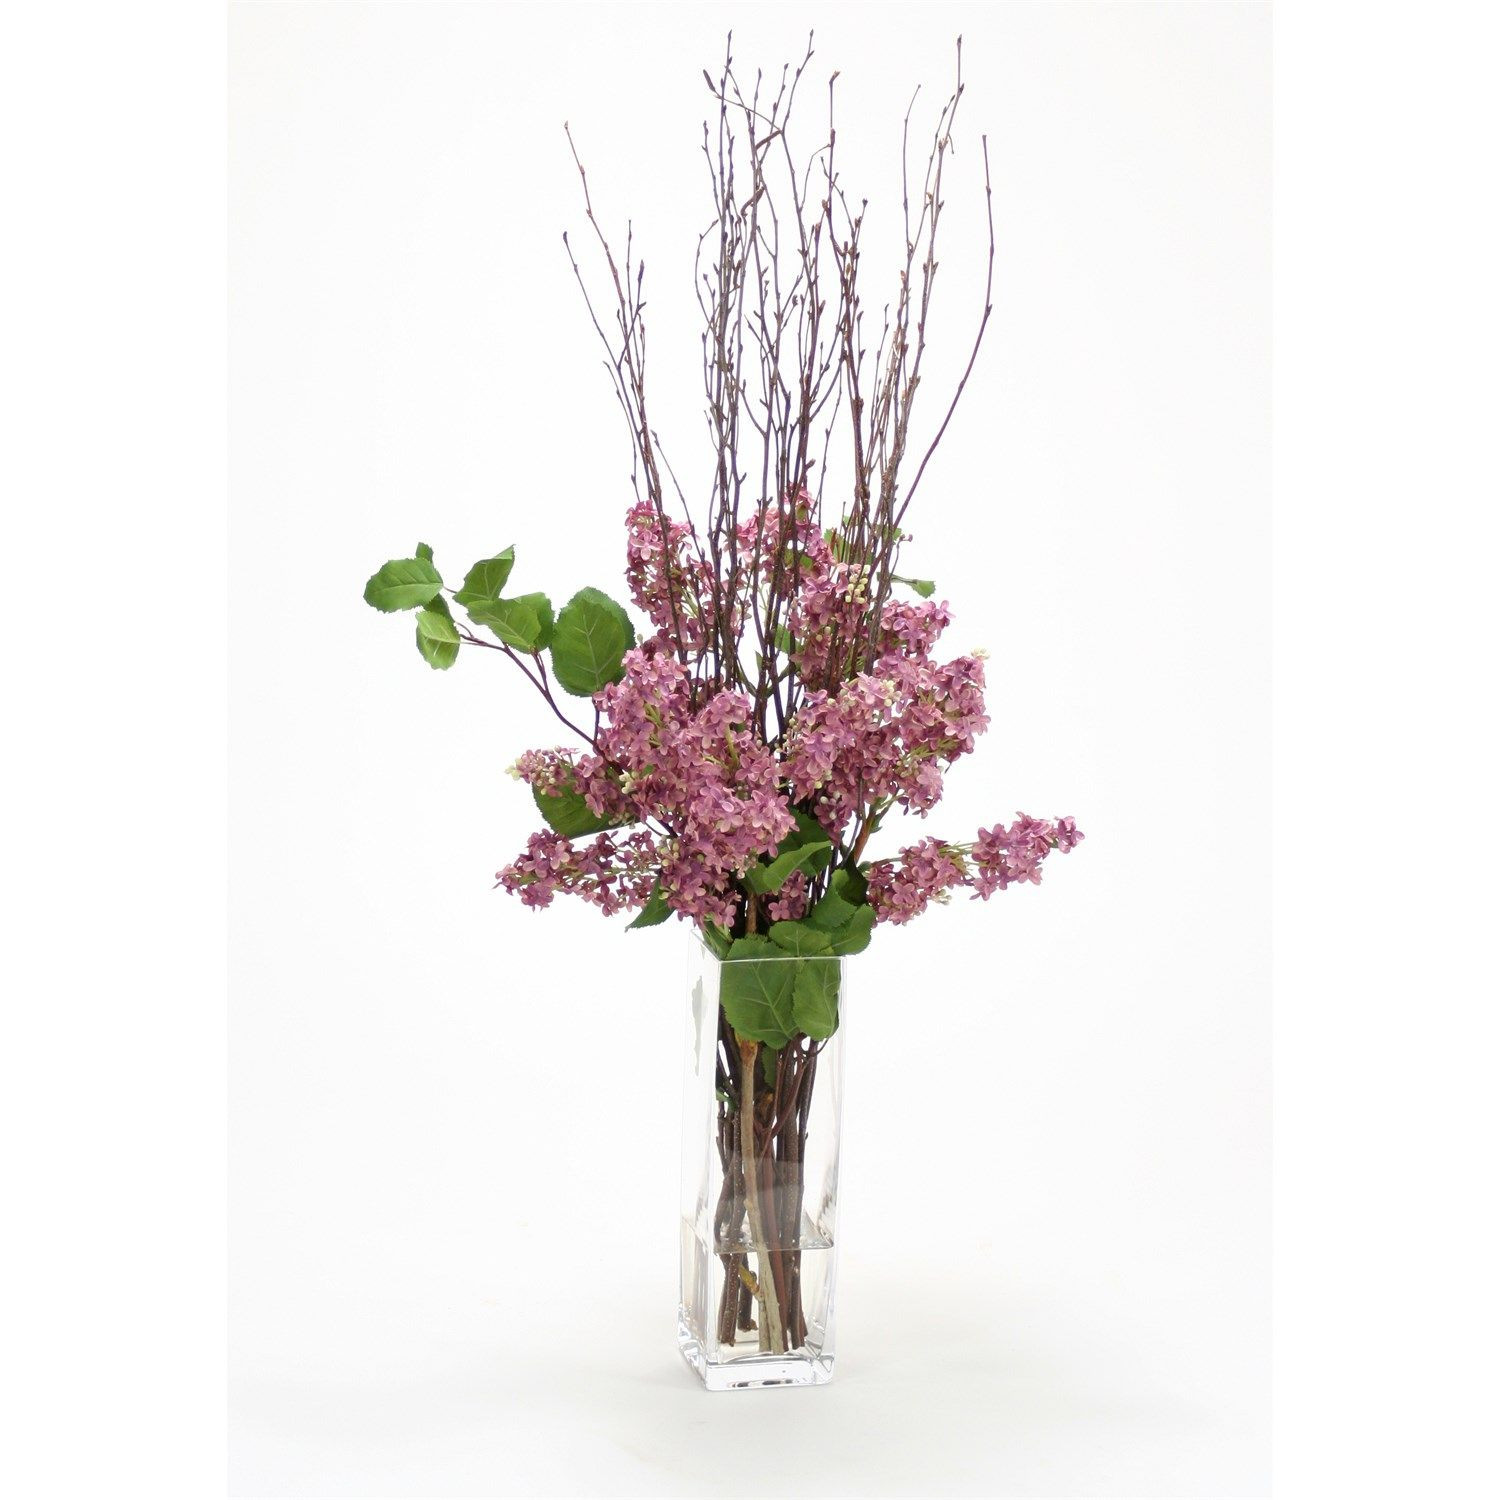 tall glass flower vases buy of distinctive designs 15747a waterlook silk blue purple lilacs elm inside distinctive designs 15747a waterlook silk blue purple lilacs elm and natural birch in a tall